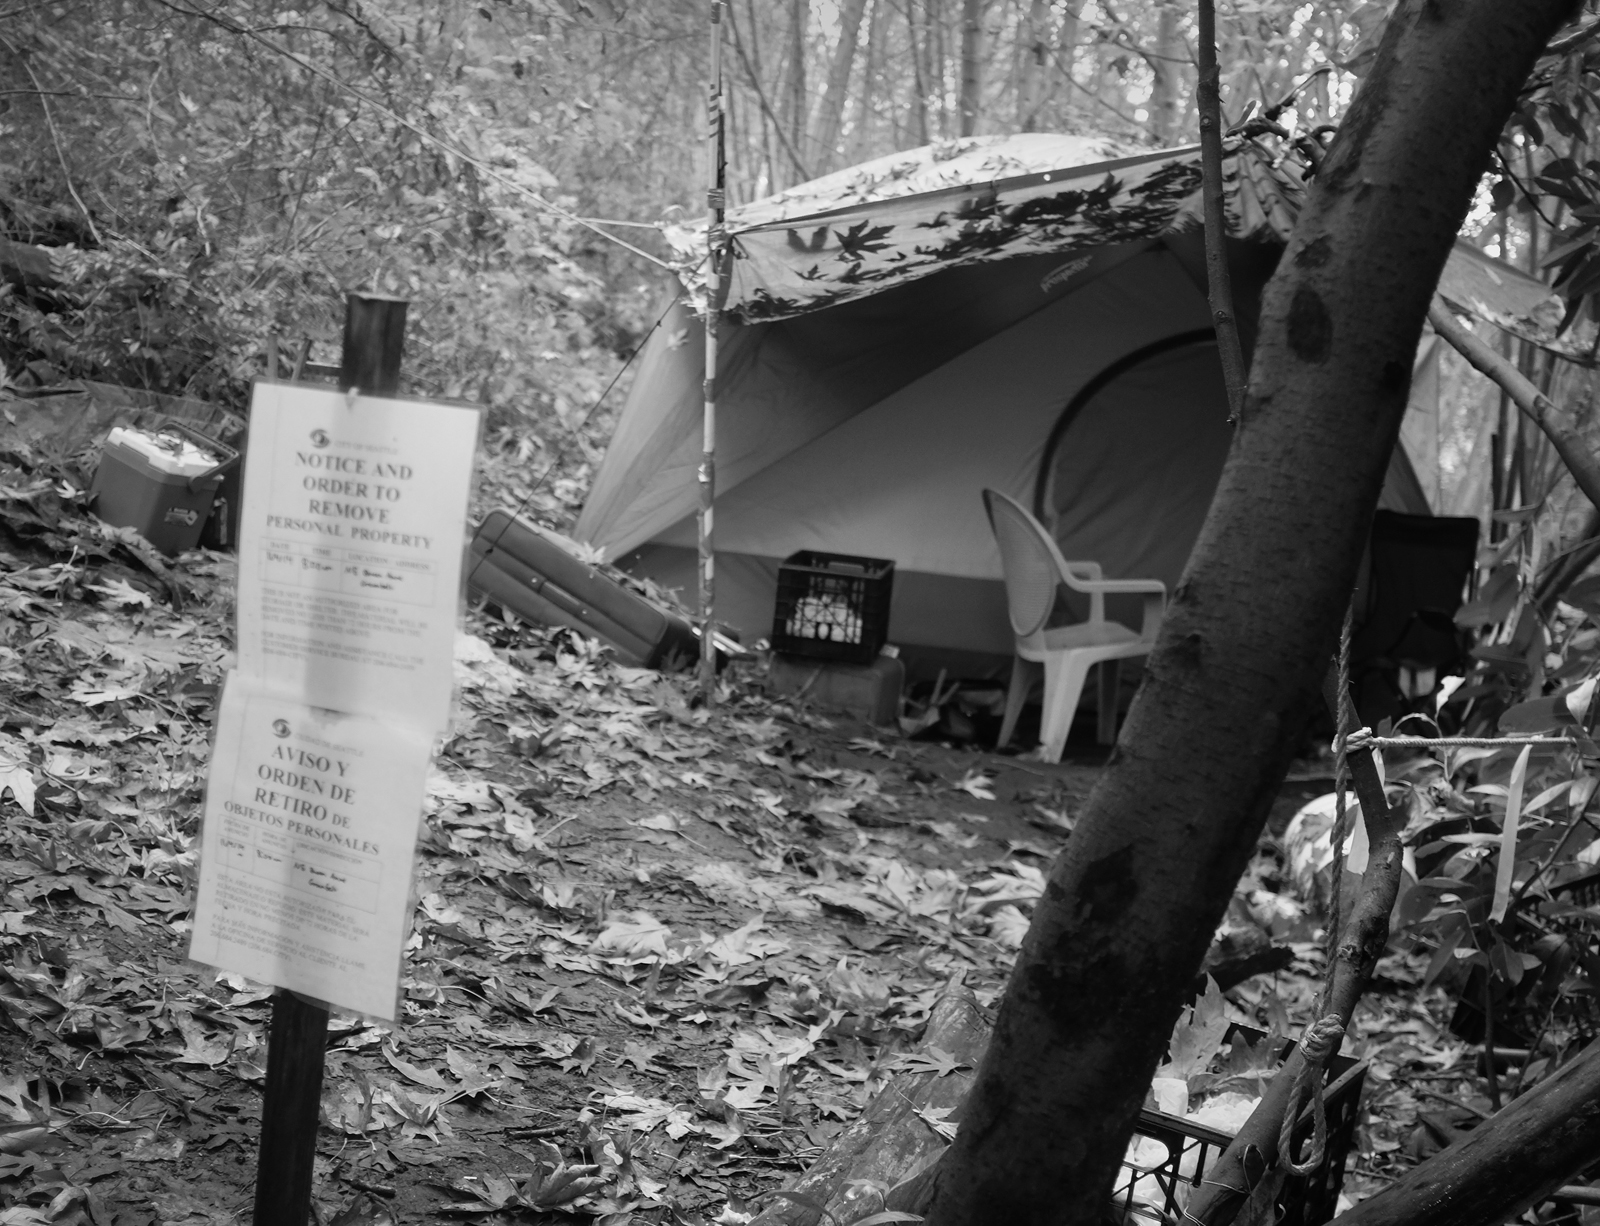 "A sign ""notice and order to remove"" in front of a tent with leaves and objects on the ground in a wooded area"